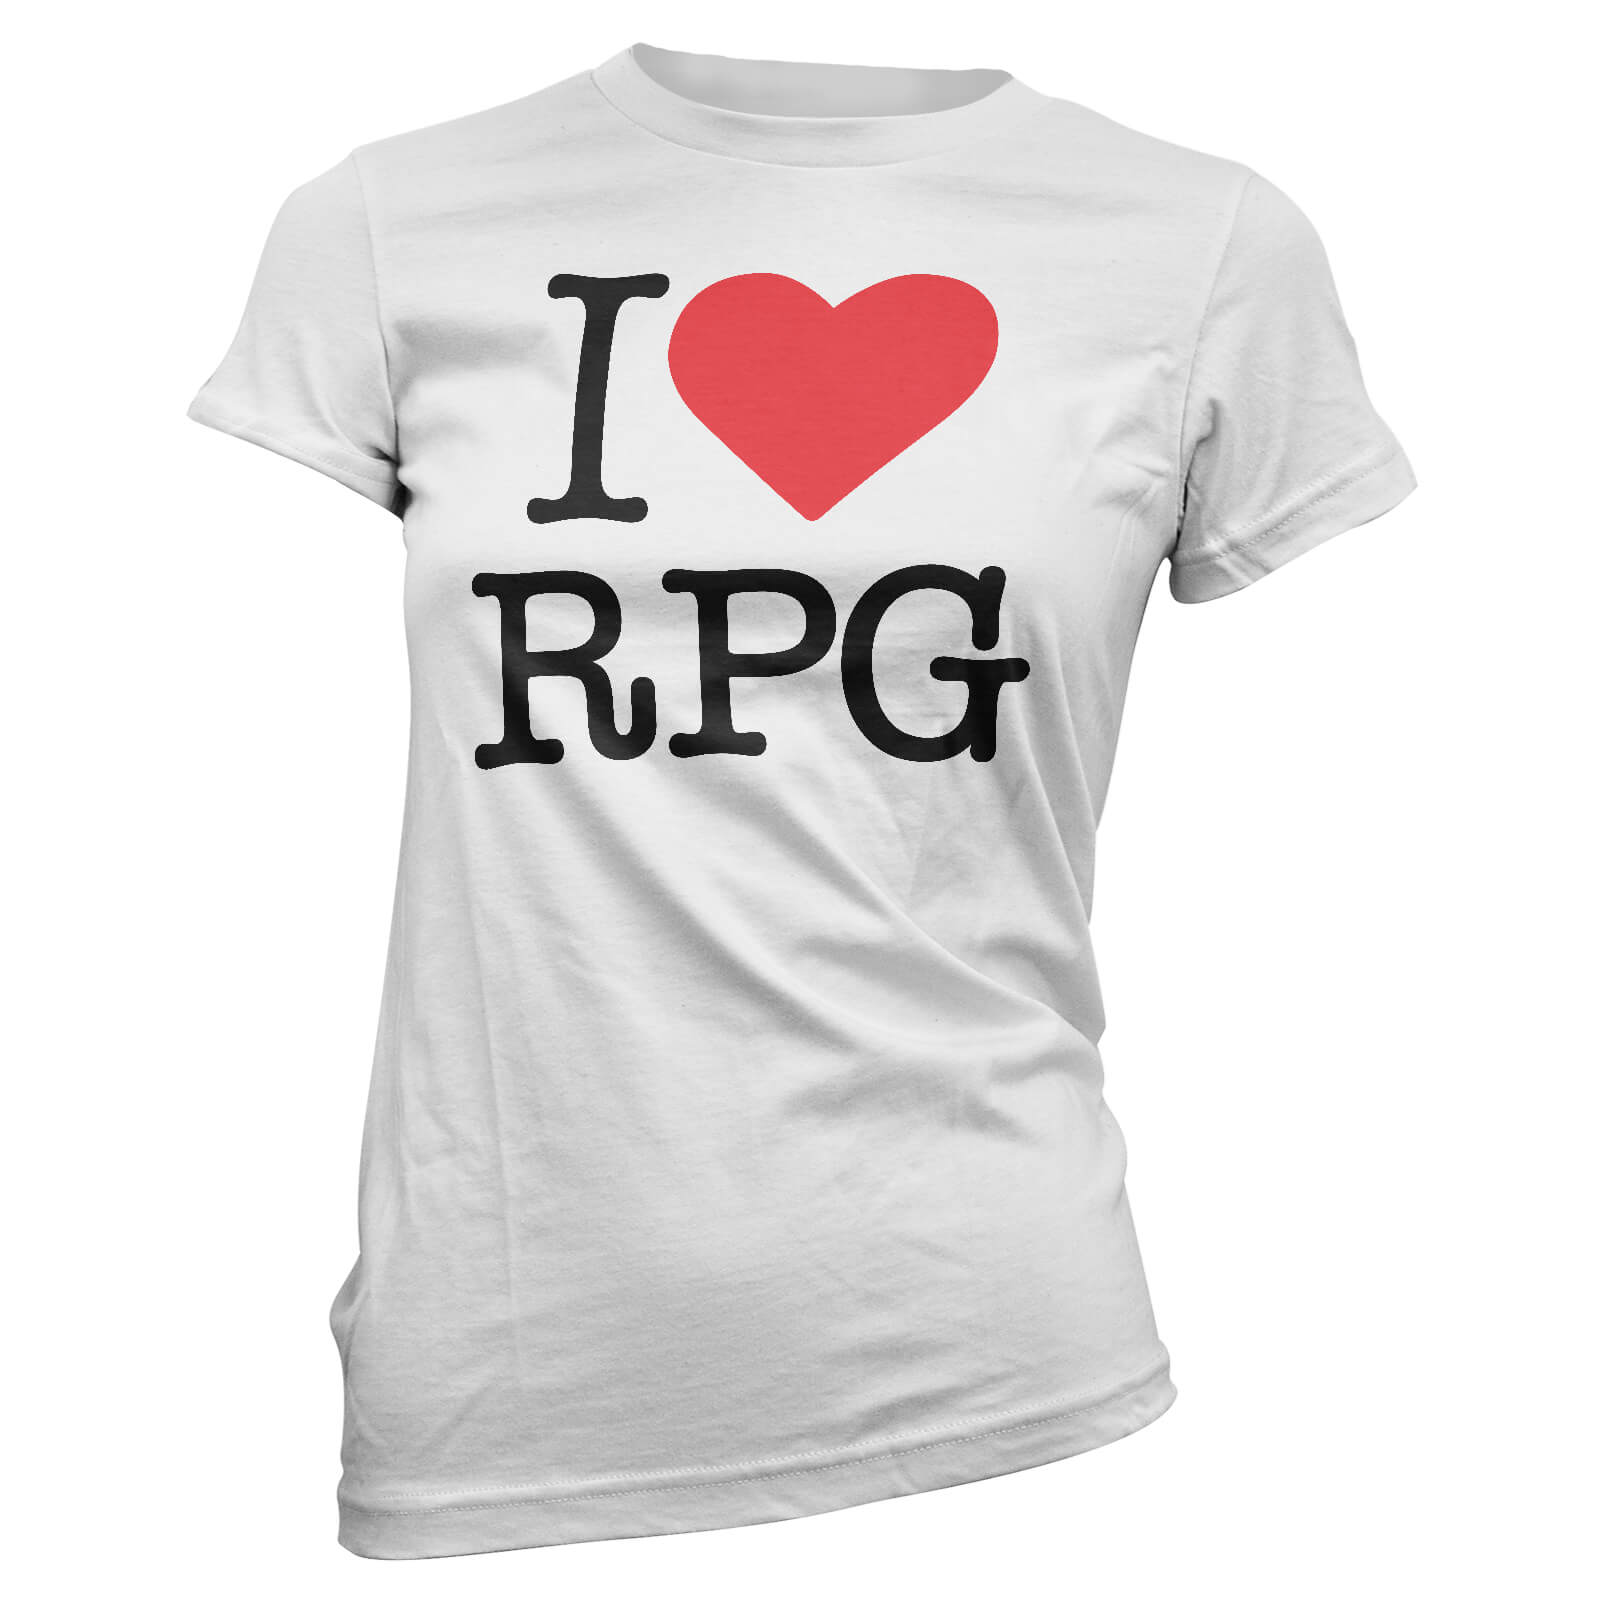 I Love RPG Women